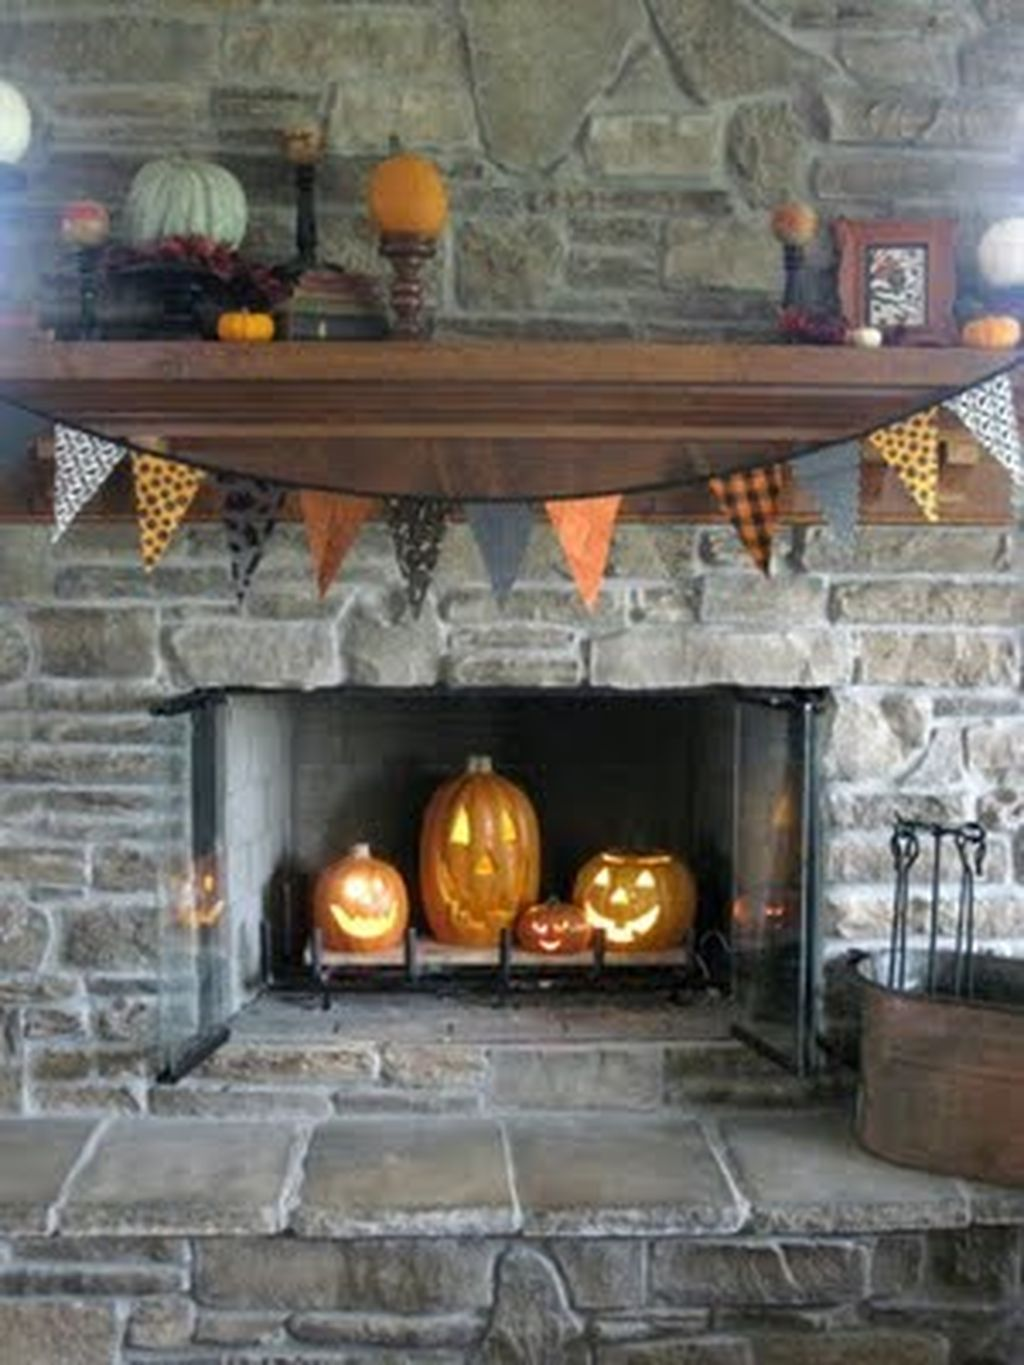 Scary But Classy Halloween Fireplace Decoration Ideas 30